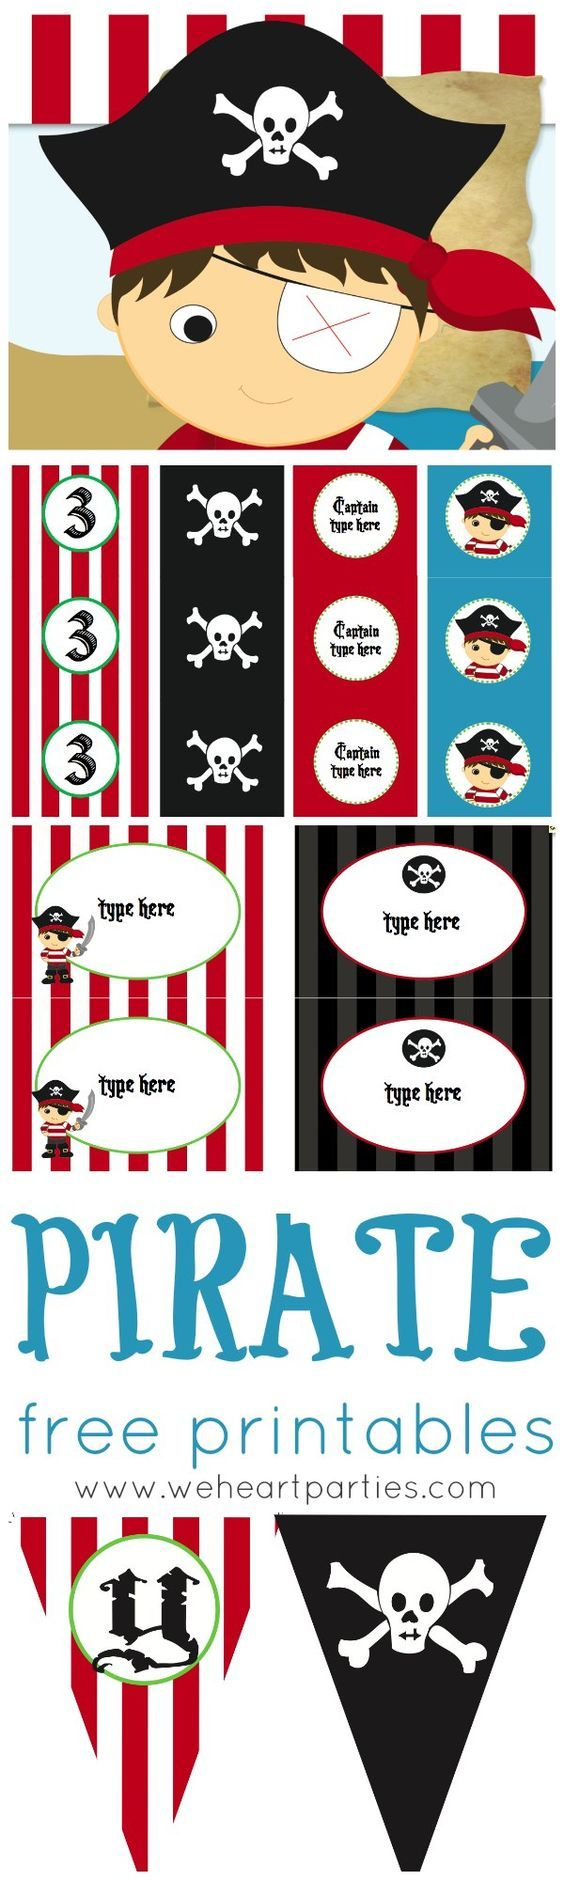 Free Pirate Party Printables (editable with child's name and age too!) by Itsy Belle Studio  www.itsybelle.com: